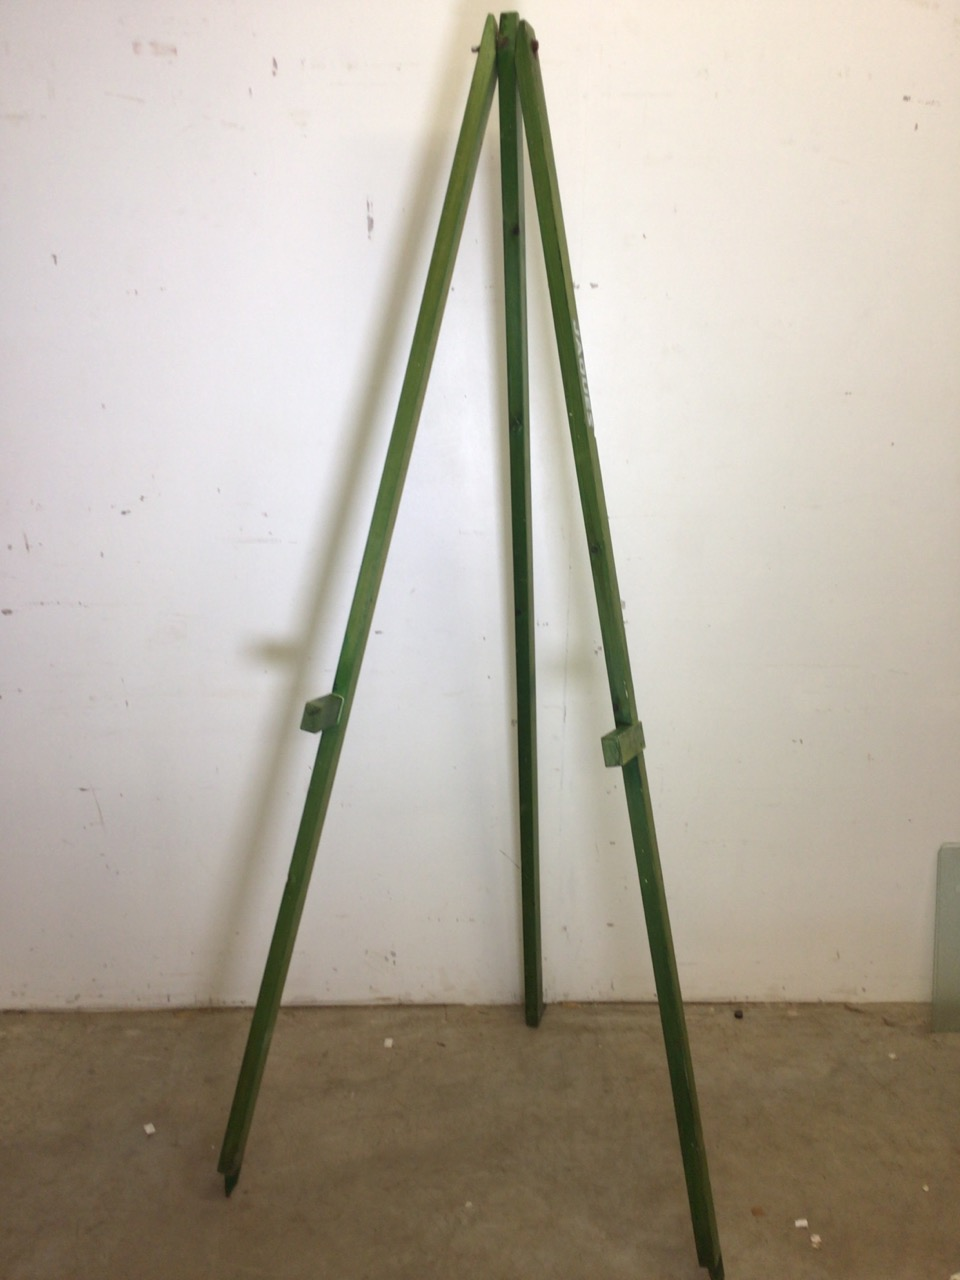 A Jaques archery stand or outdoor easel. H:195cm